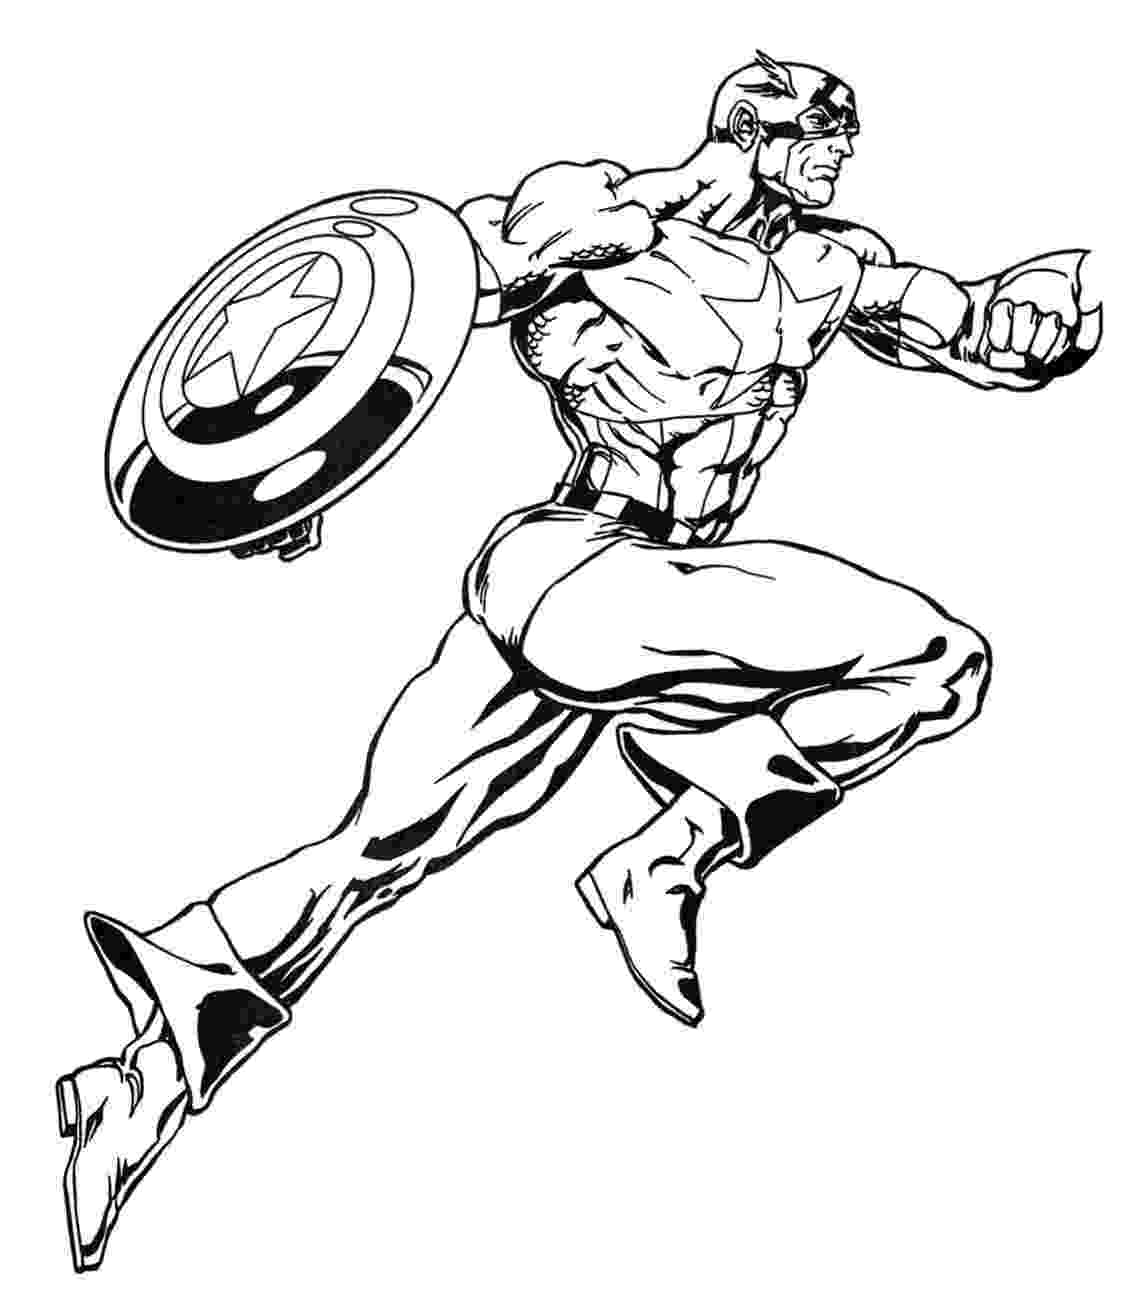 superheroes coloring pages superhero coloring pages to download and print for free pages superheroes coloring